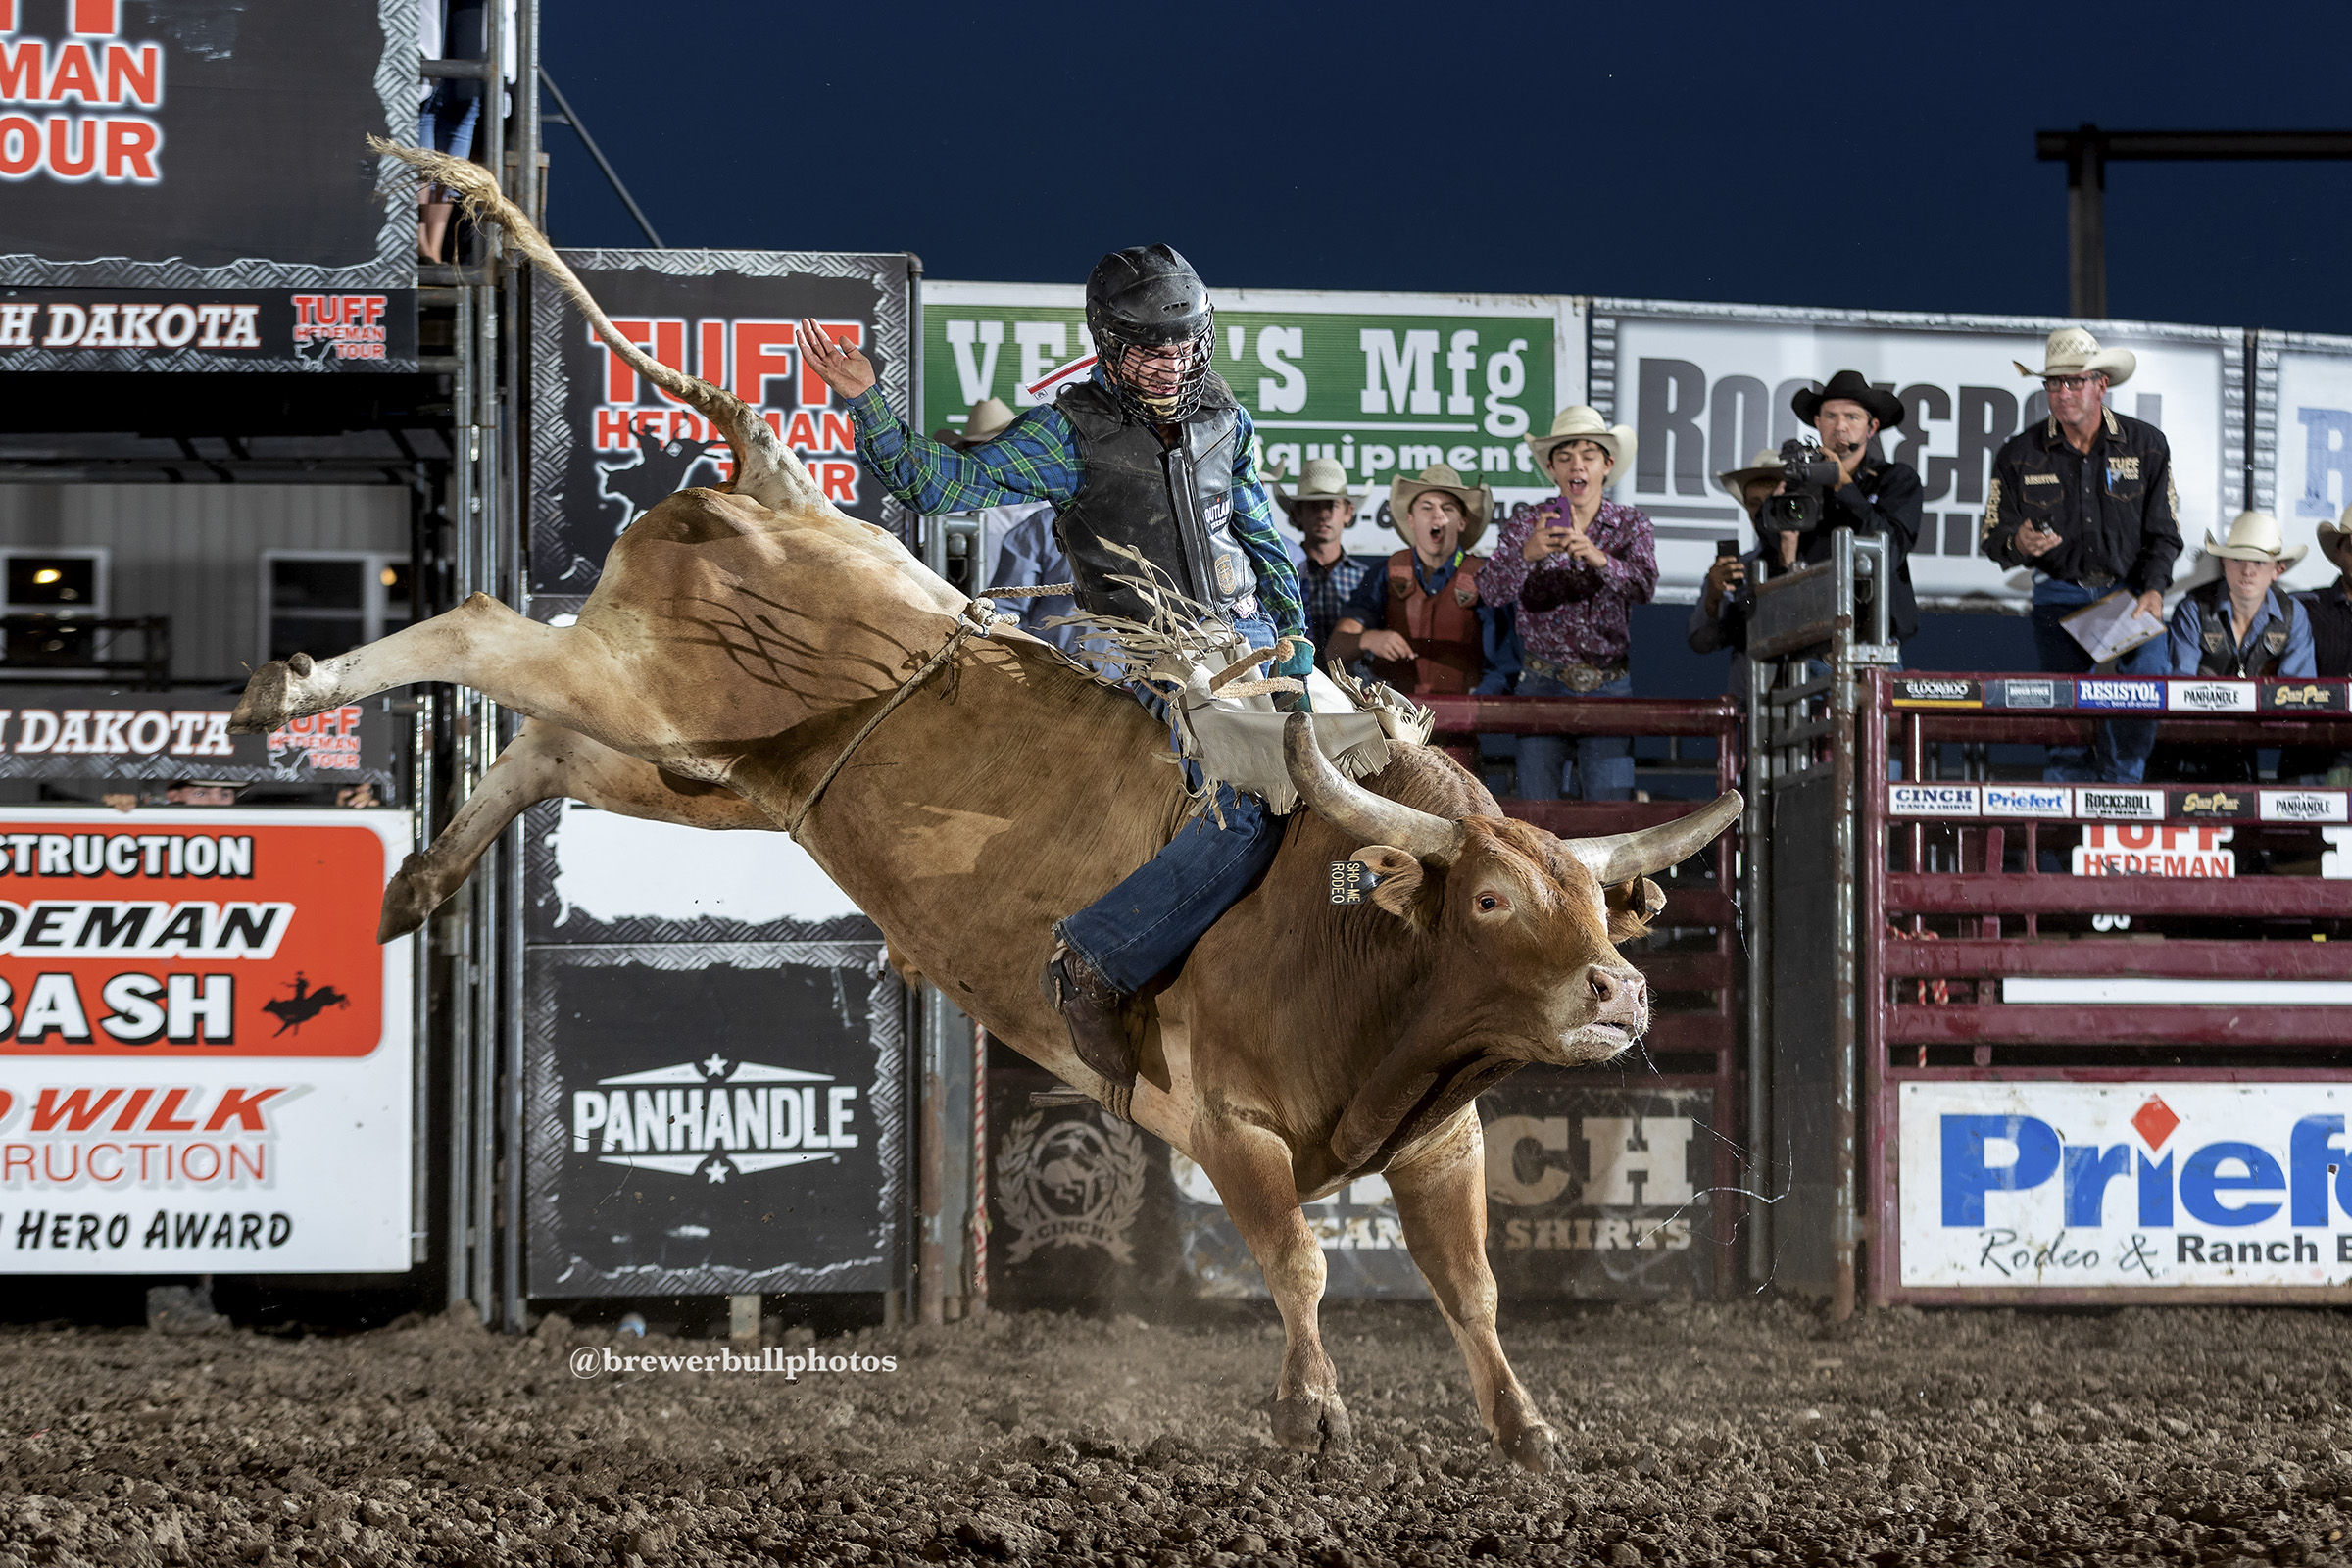 Caleb McCaslin splits round one with a 90 point ride on Sho Me Rodeo's Pok-N-Grit..